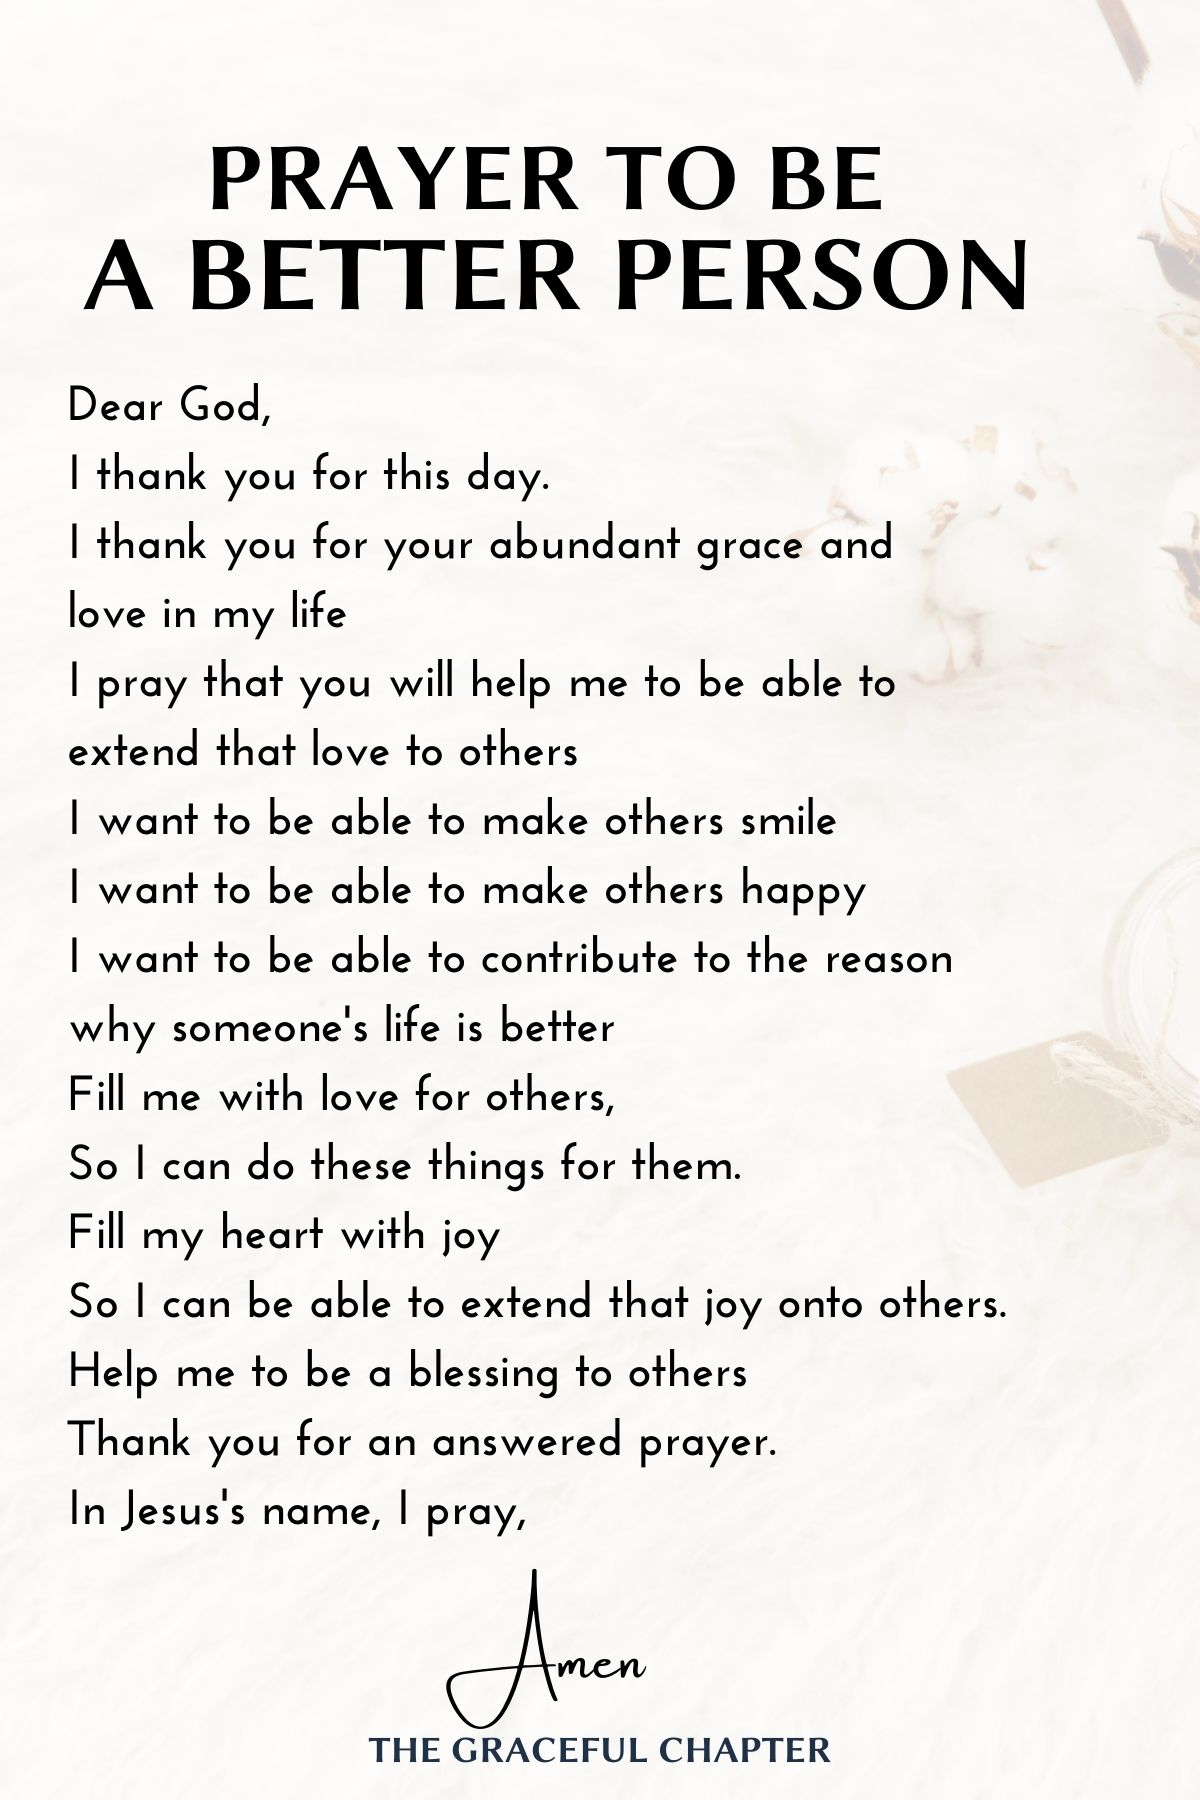 Prayer to be a better person